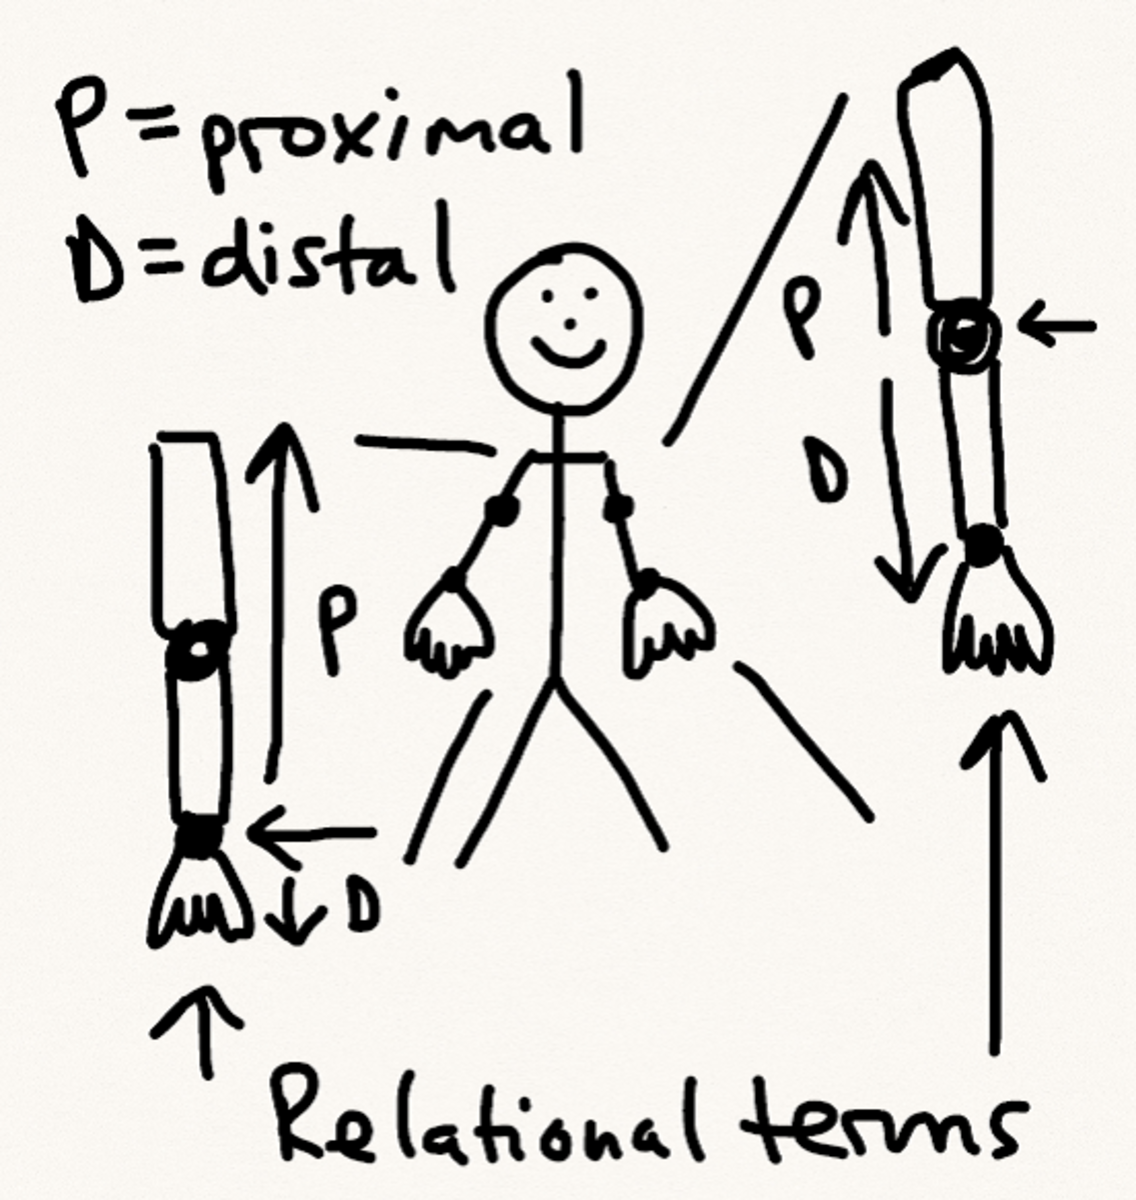 Proximal/distal schematic